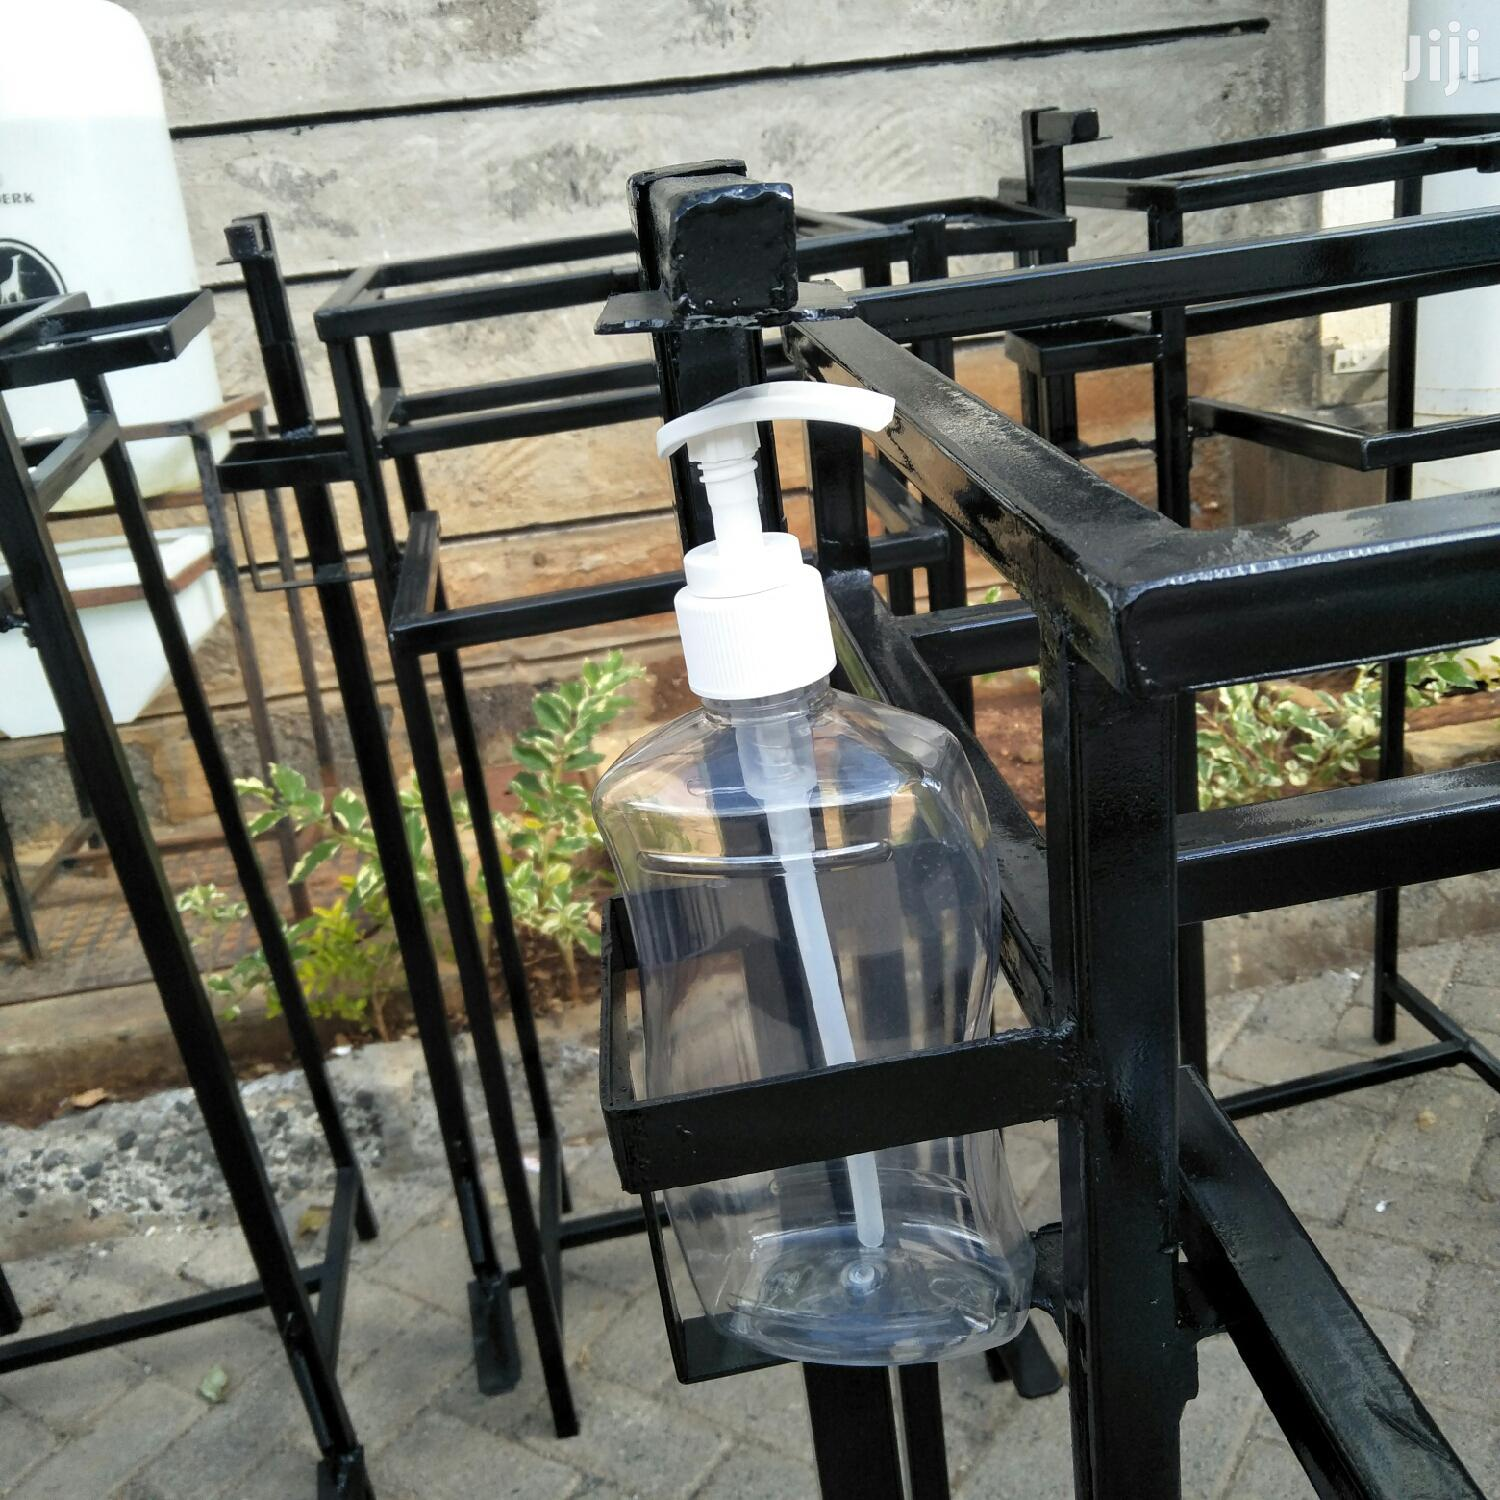 Hand Wash Stations | Plumbing & Water Supply for sale in Nairobi Central, Nairobi, Kenya